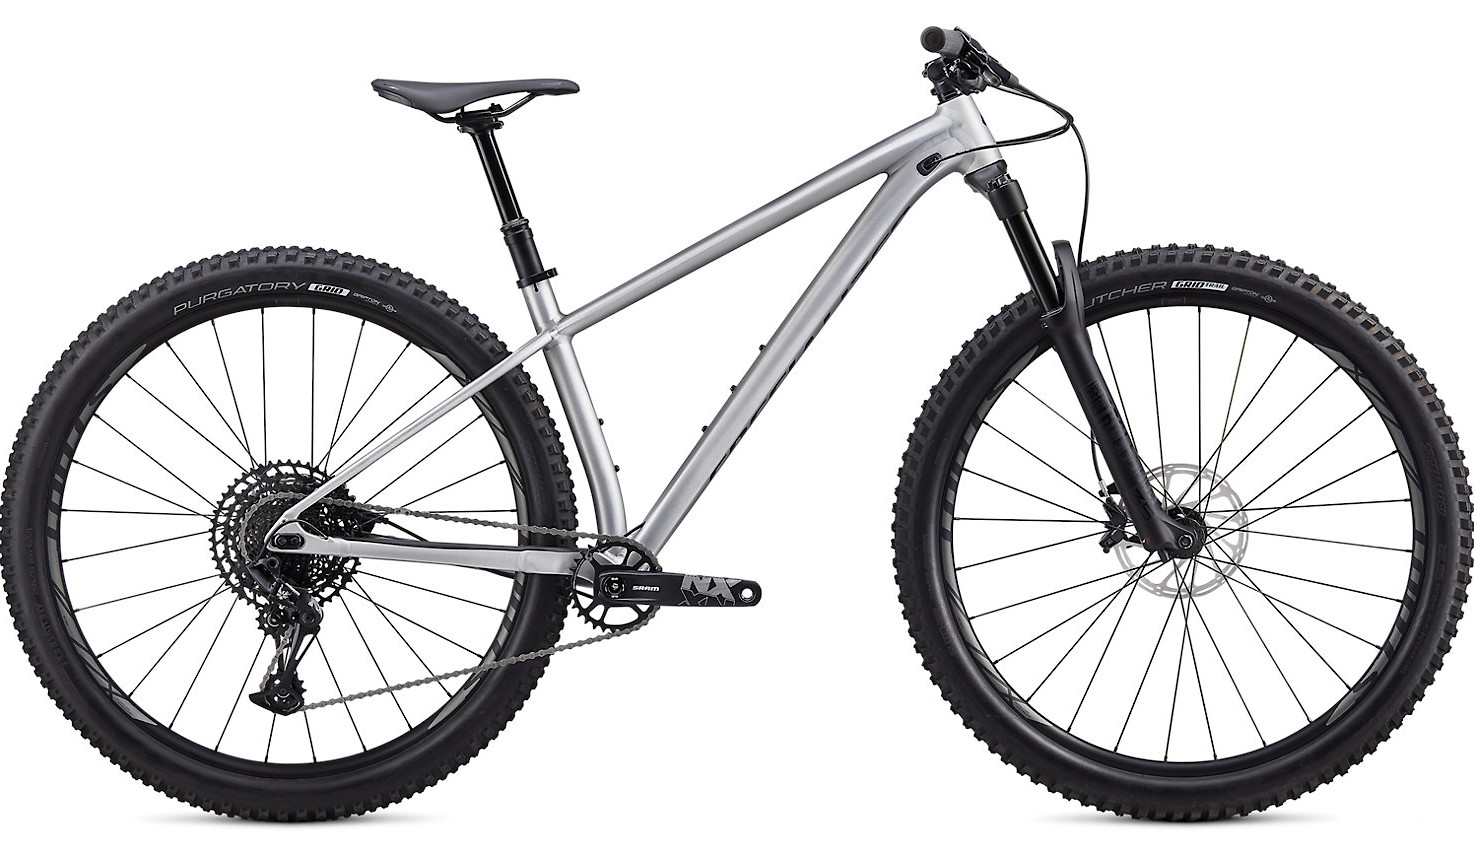 2020 Specialized Fuse Expert 29